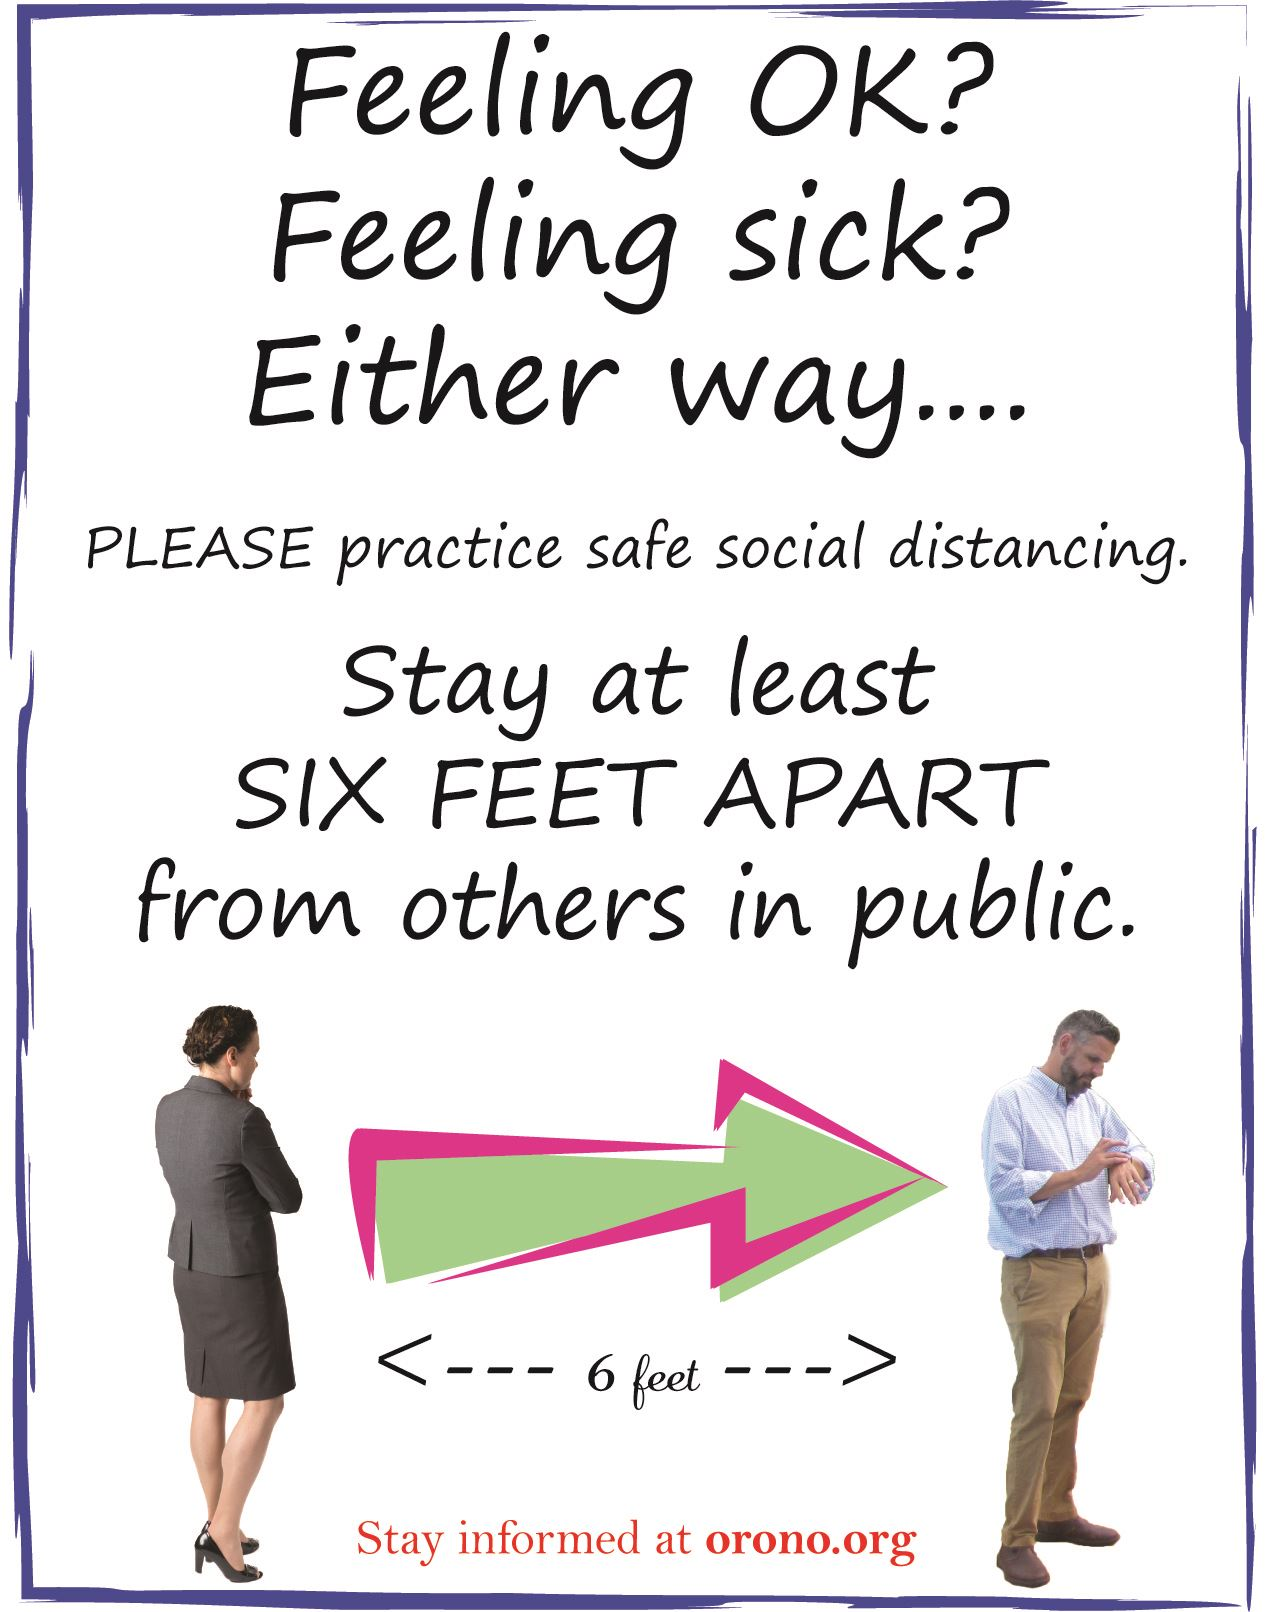 stay six feet apart in public to avoid germs